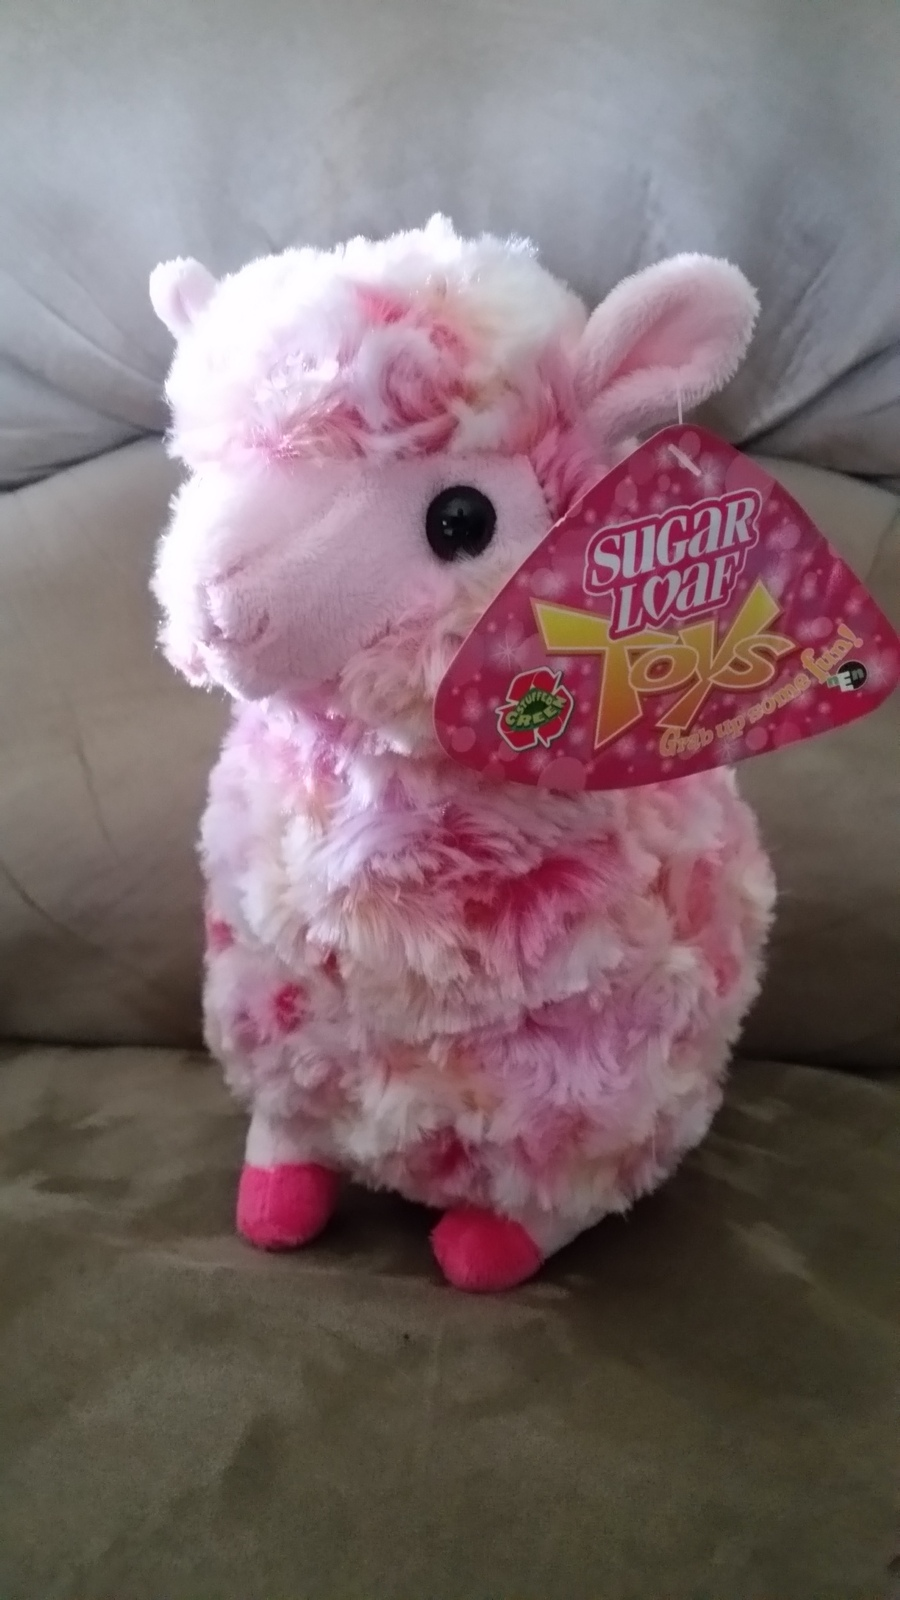 Llama Pink and Red Brand New Plush NWT Stuffed Animal w/ Tags 11""